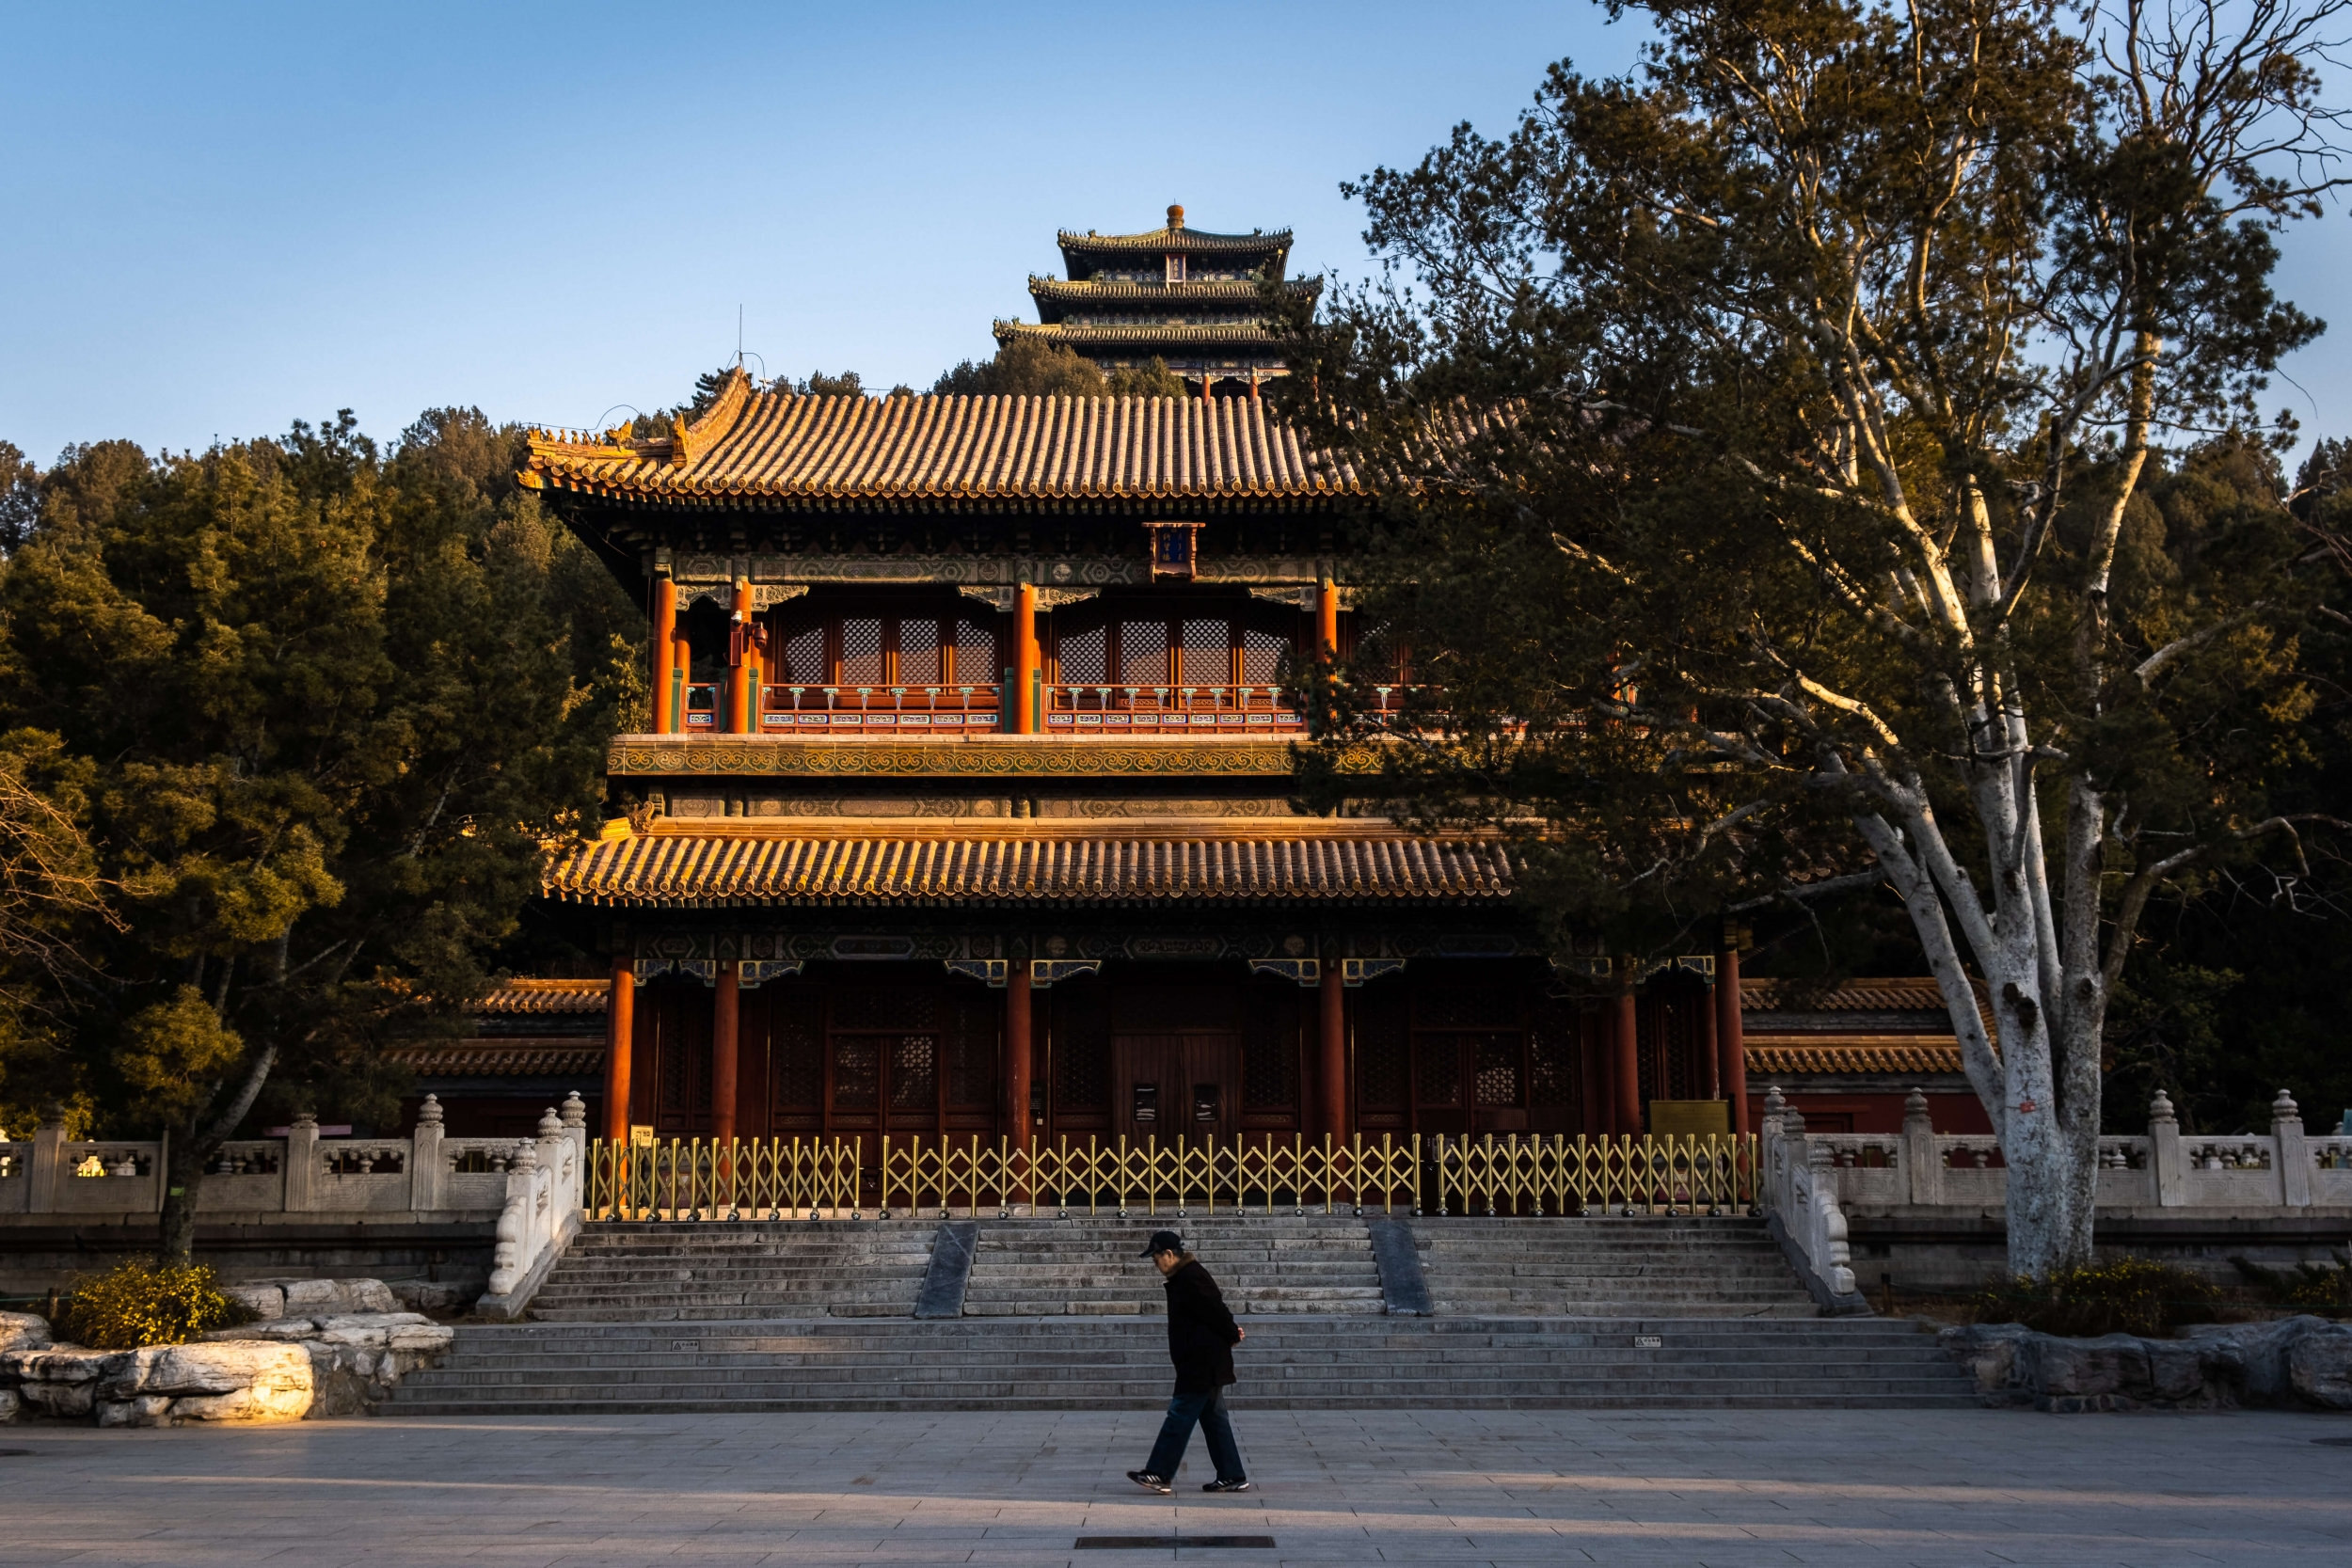 Travel in China, China travel, China trips, Forbidden City, Beijing, Sunrise, reflection, best spot for photography in Beijing, Photo Tour in China, China photo tours, Jingshan hill